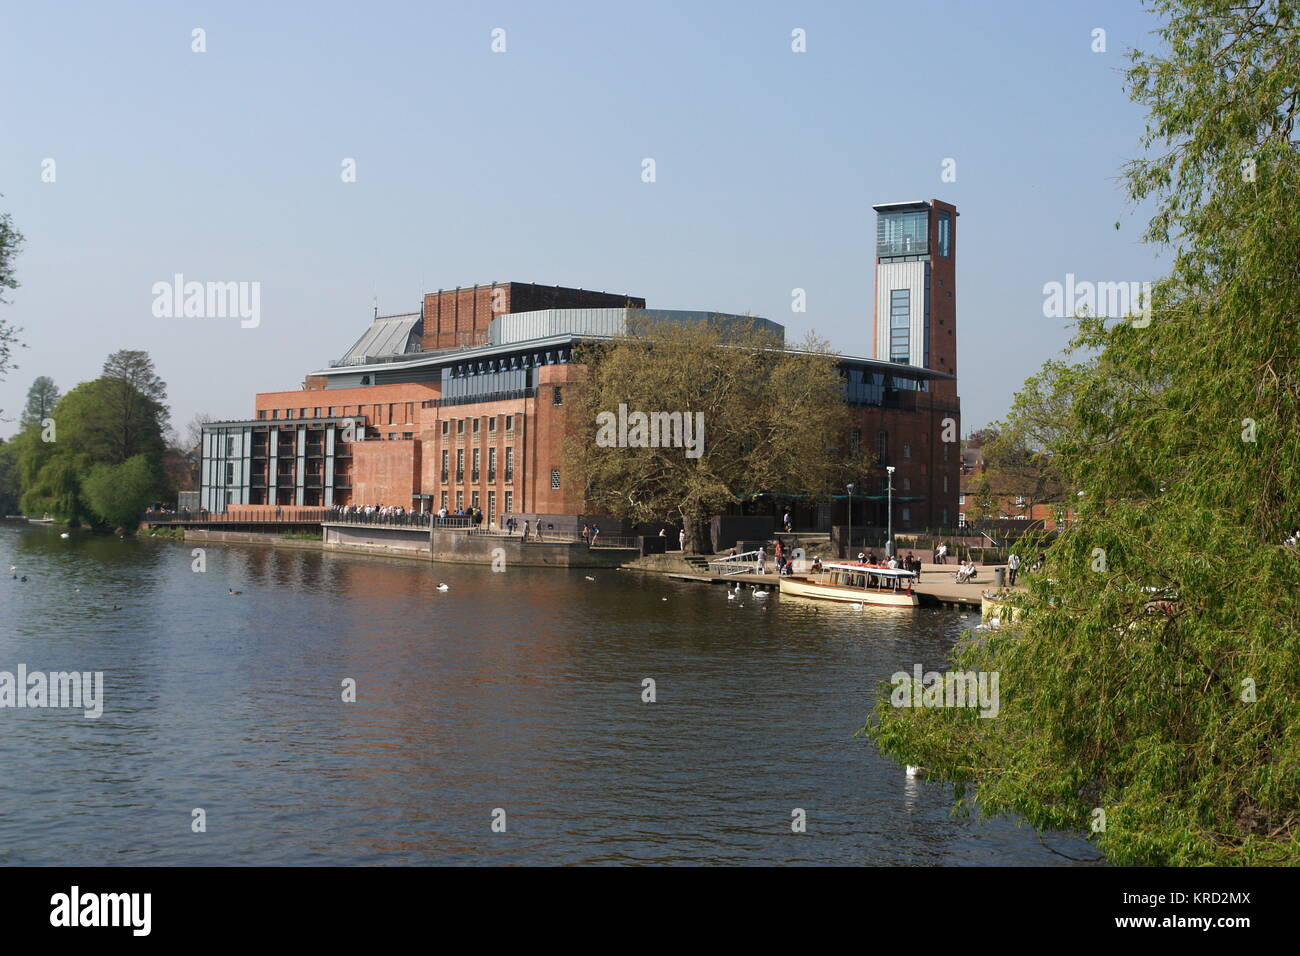 View from across the river of the Shakespeare Memorial Theatre, home of the Royal Shakespeare Company, with the - Stock Image